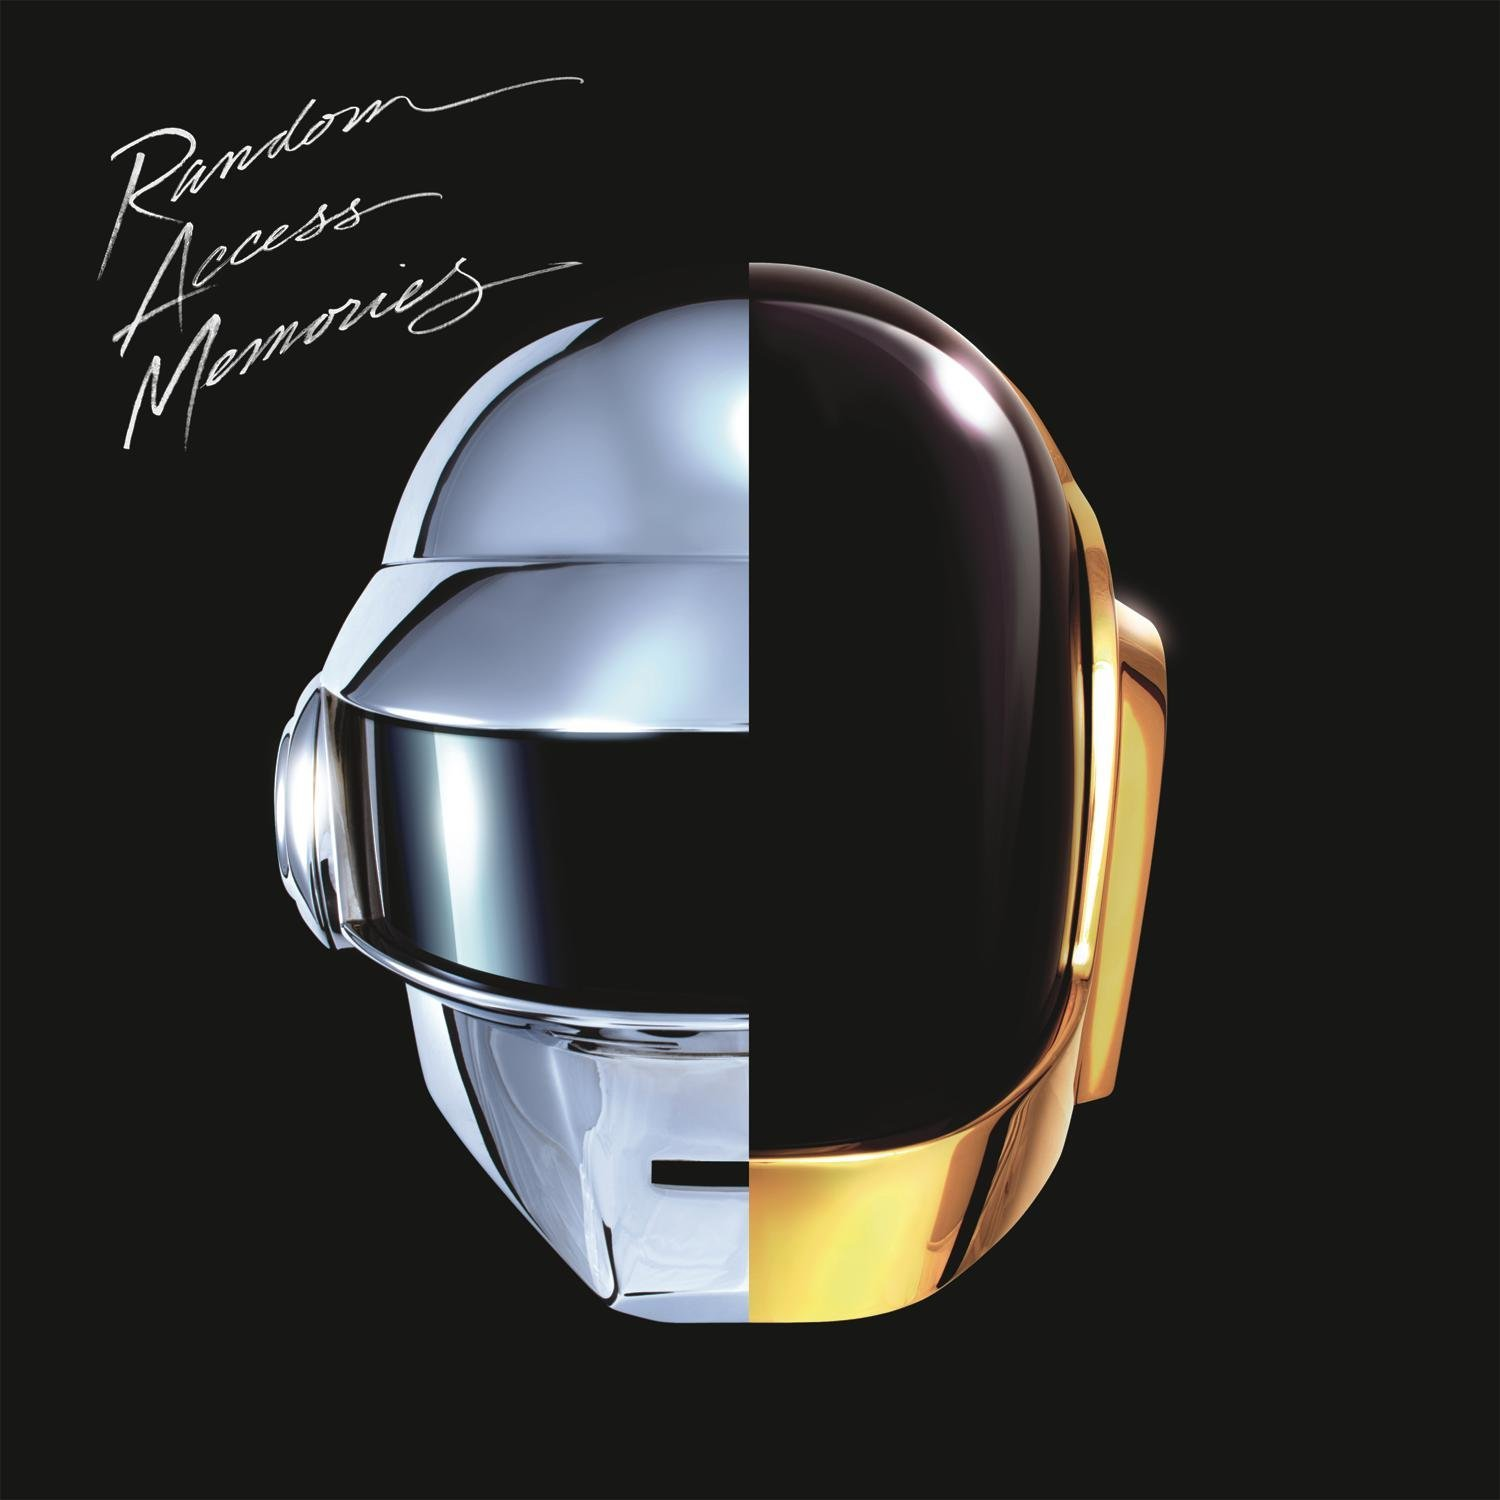 Daft Punk: Random Access Memories post image